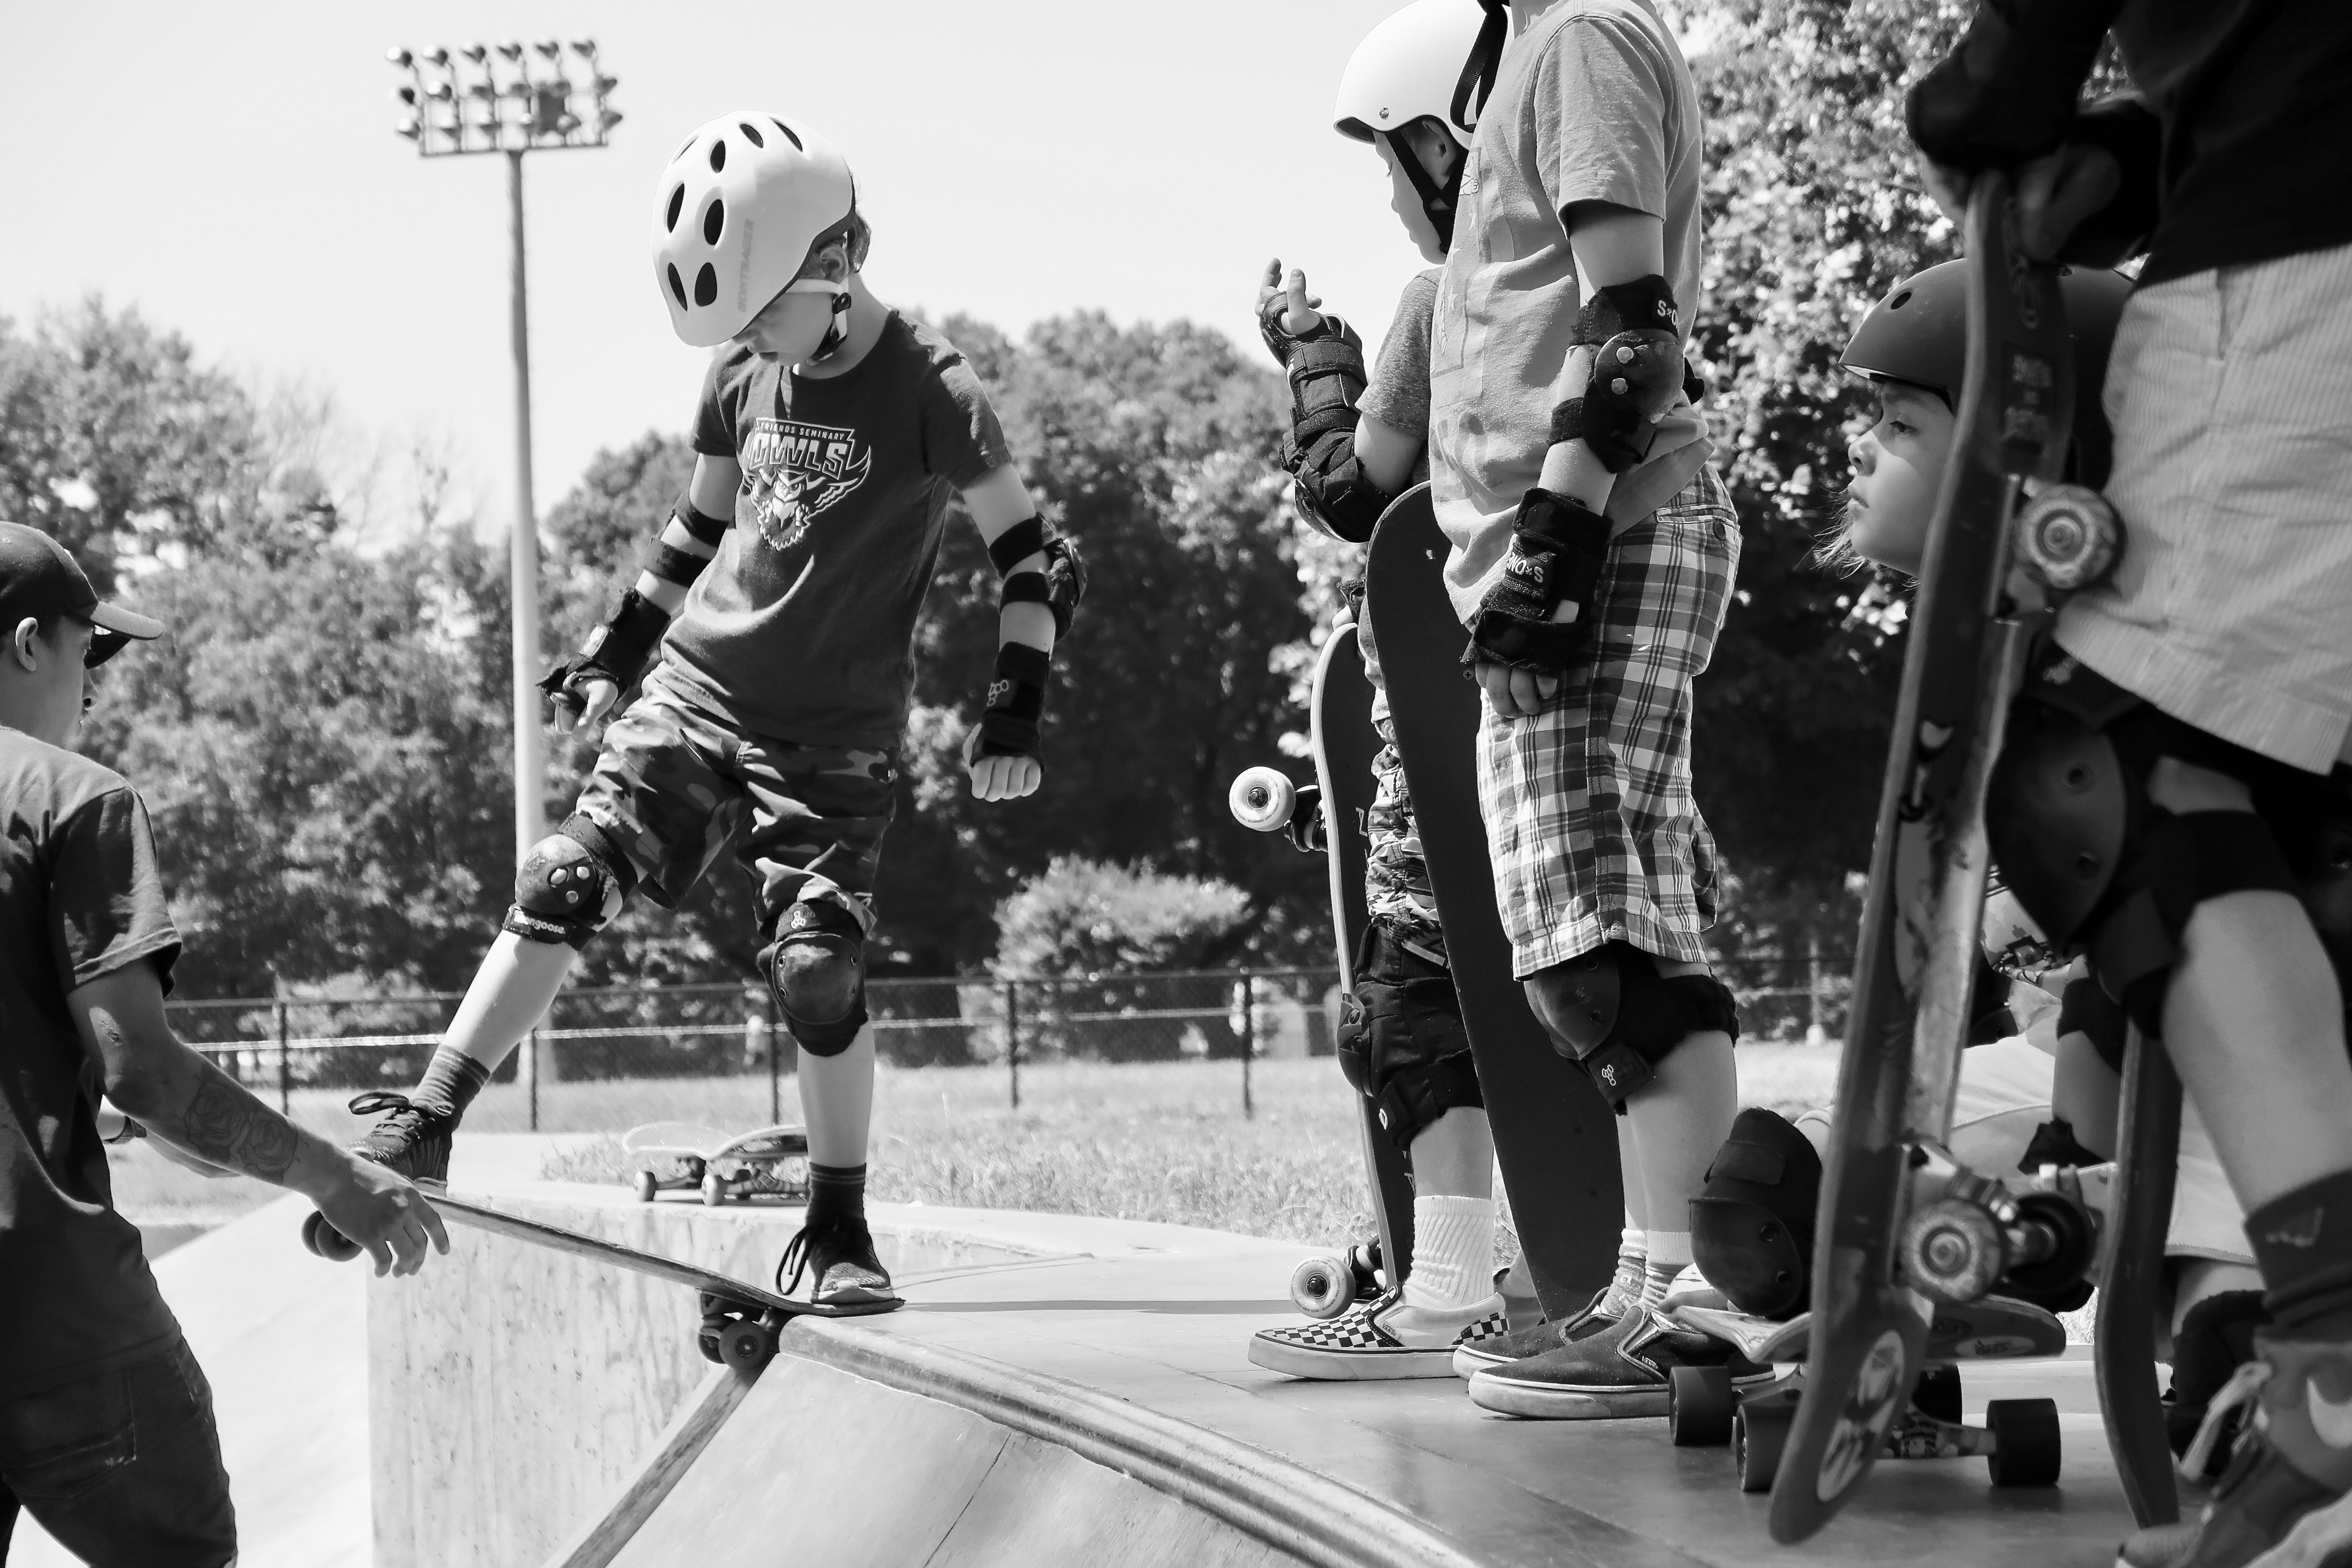 BB Skateboard Camp